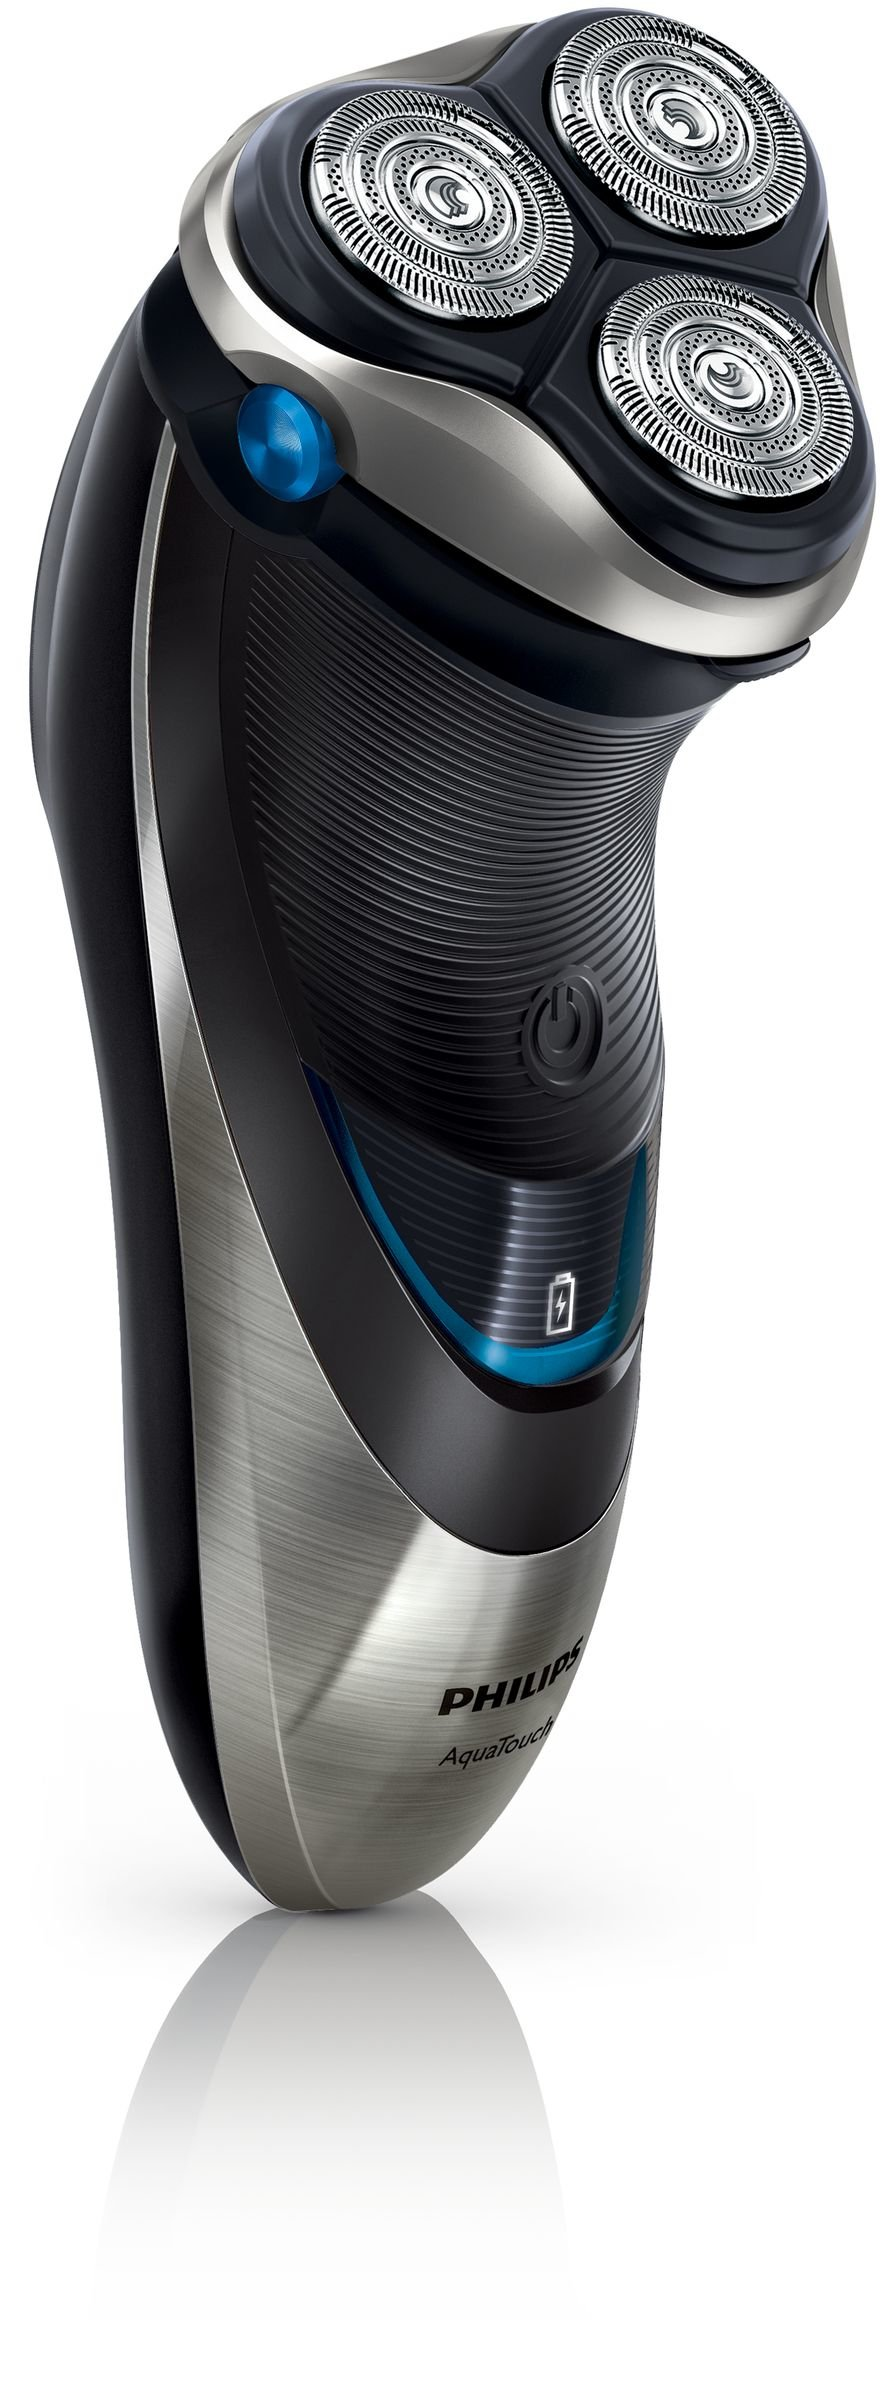 Philips Norelco Shaver 5100 AT928/41